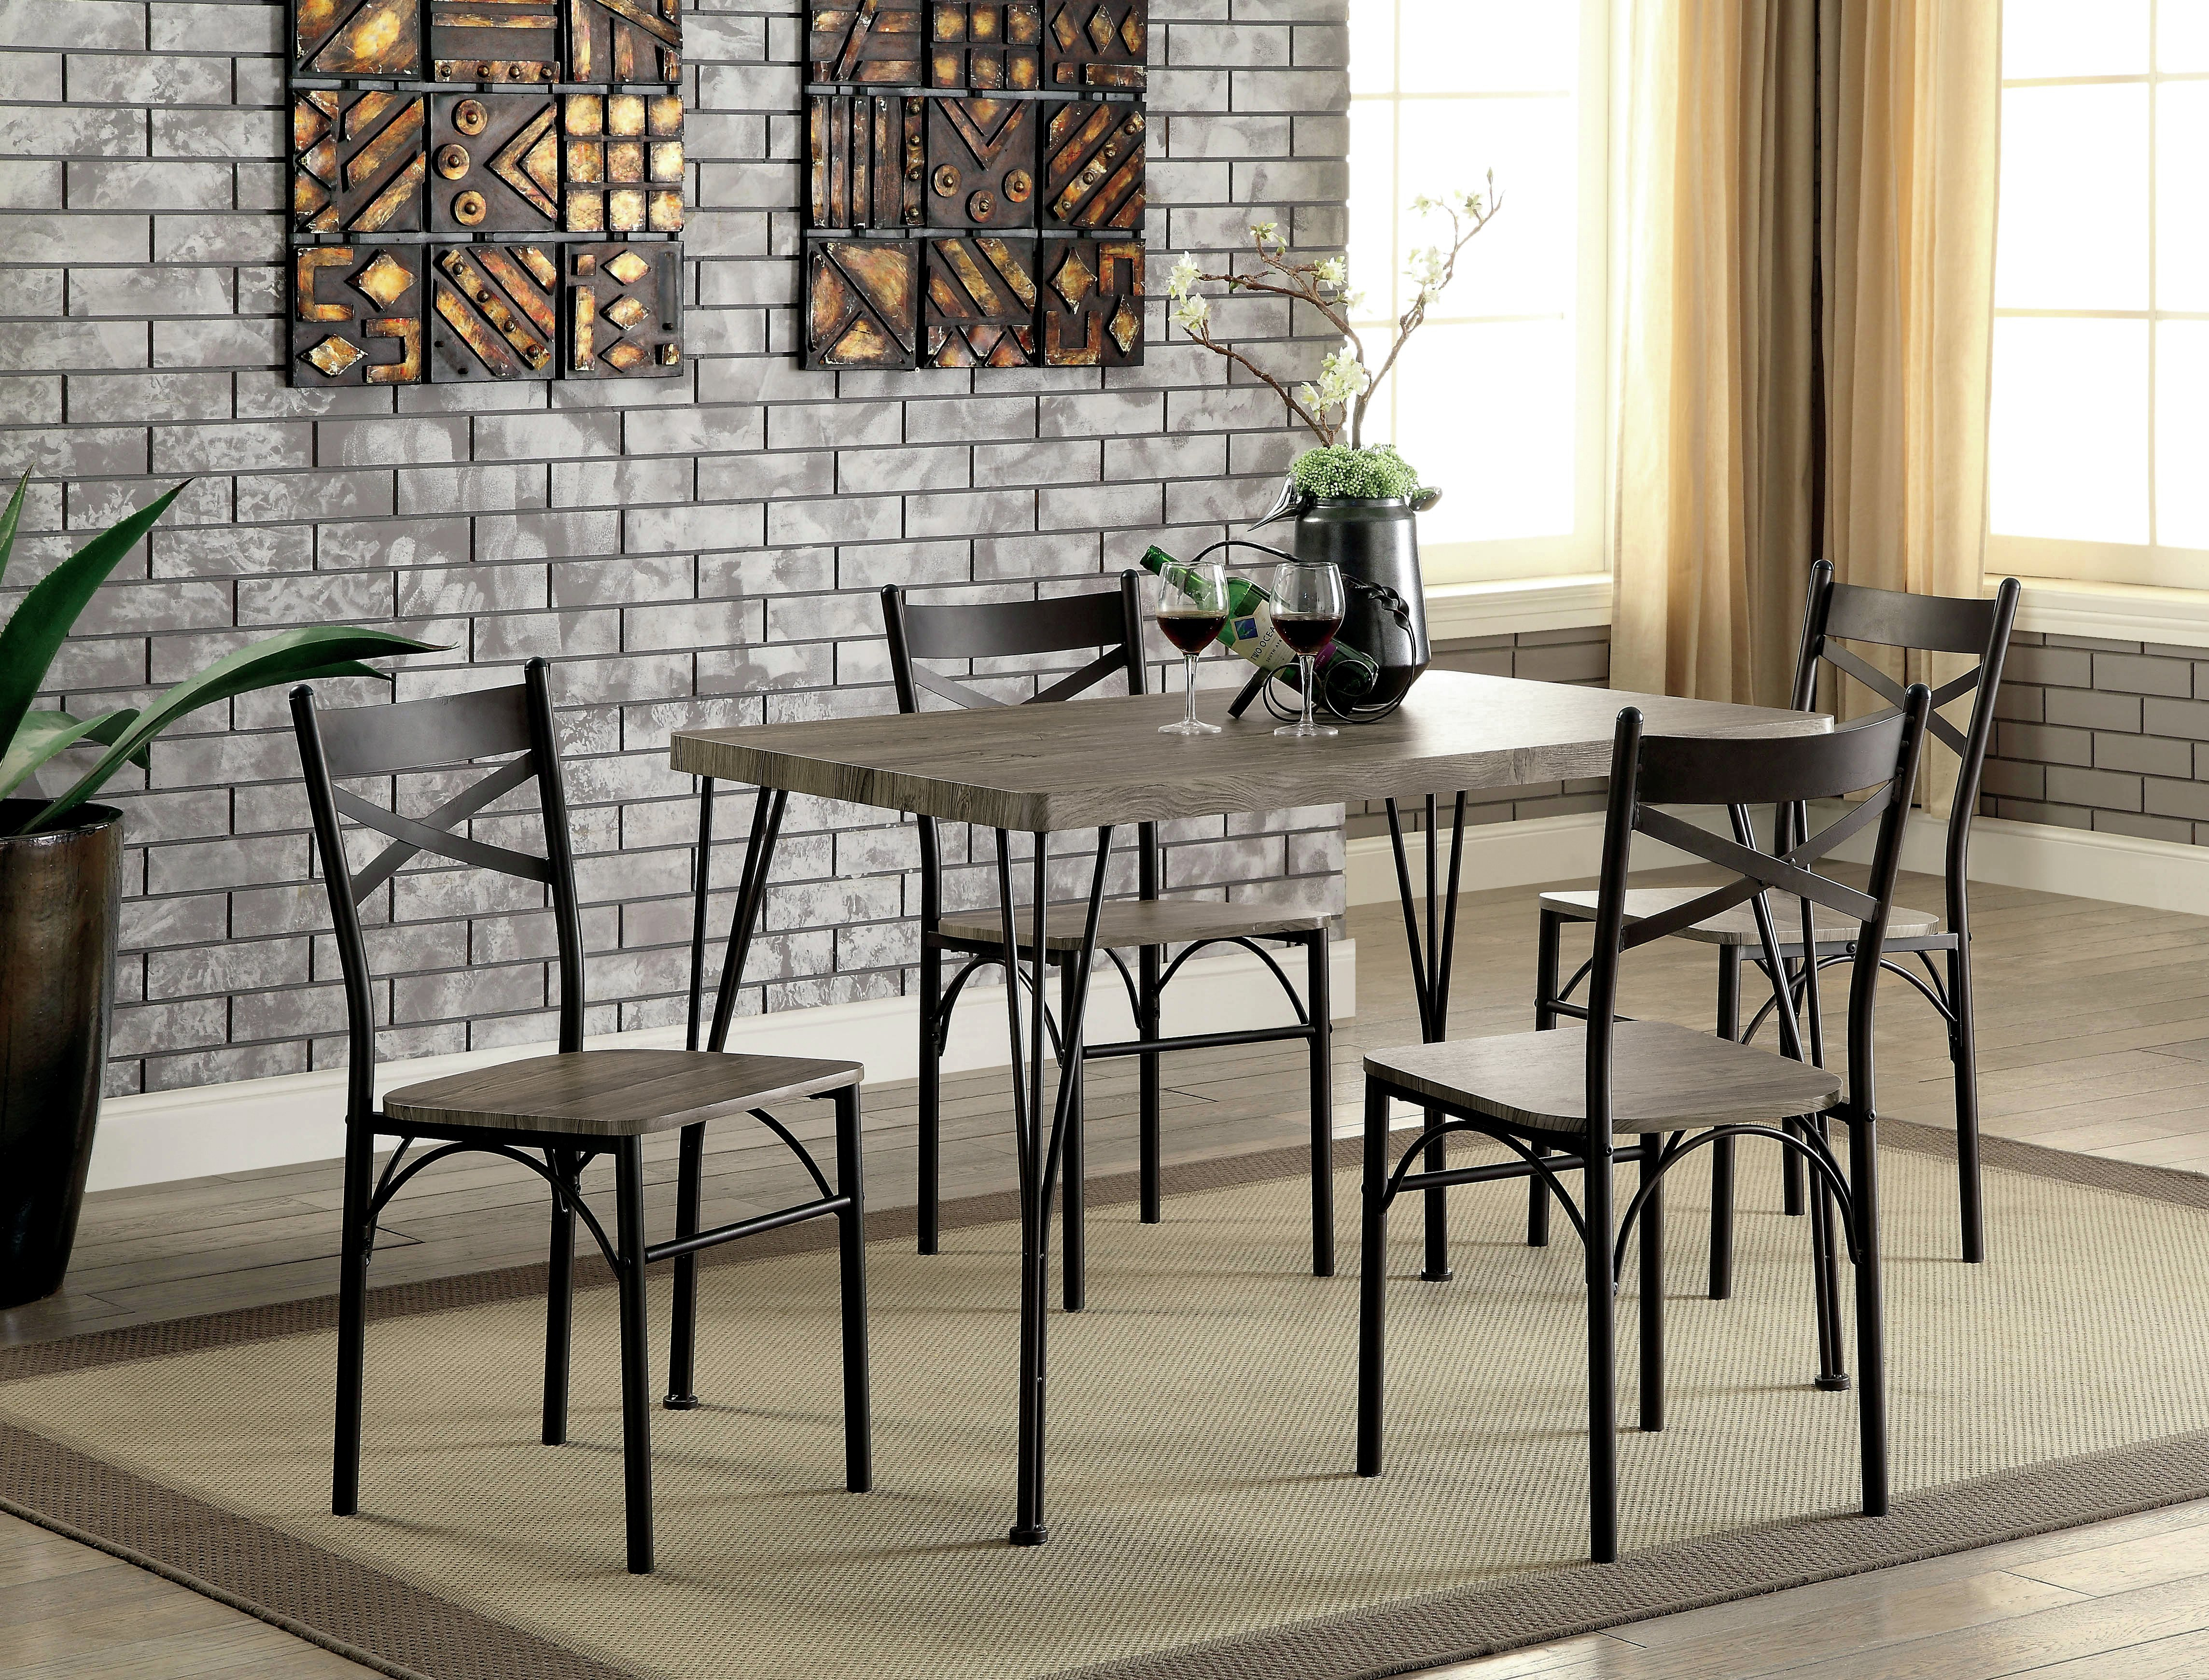 Middleport 5 Piece Dining Set Throughout Newest Jarrod 5 Piece Dining Sets (View 11 of 20)